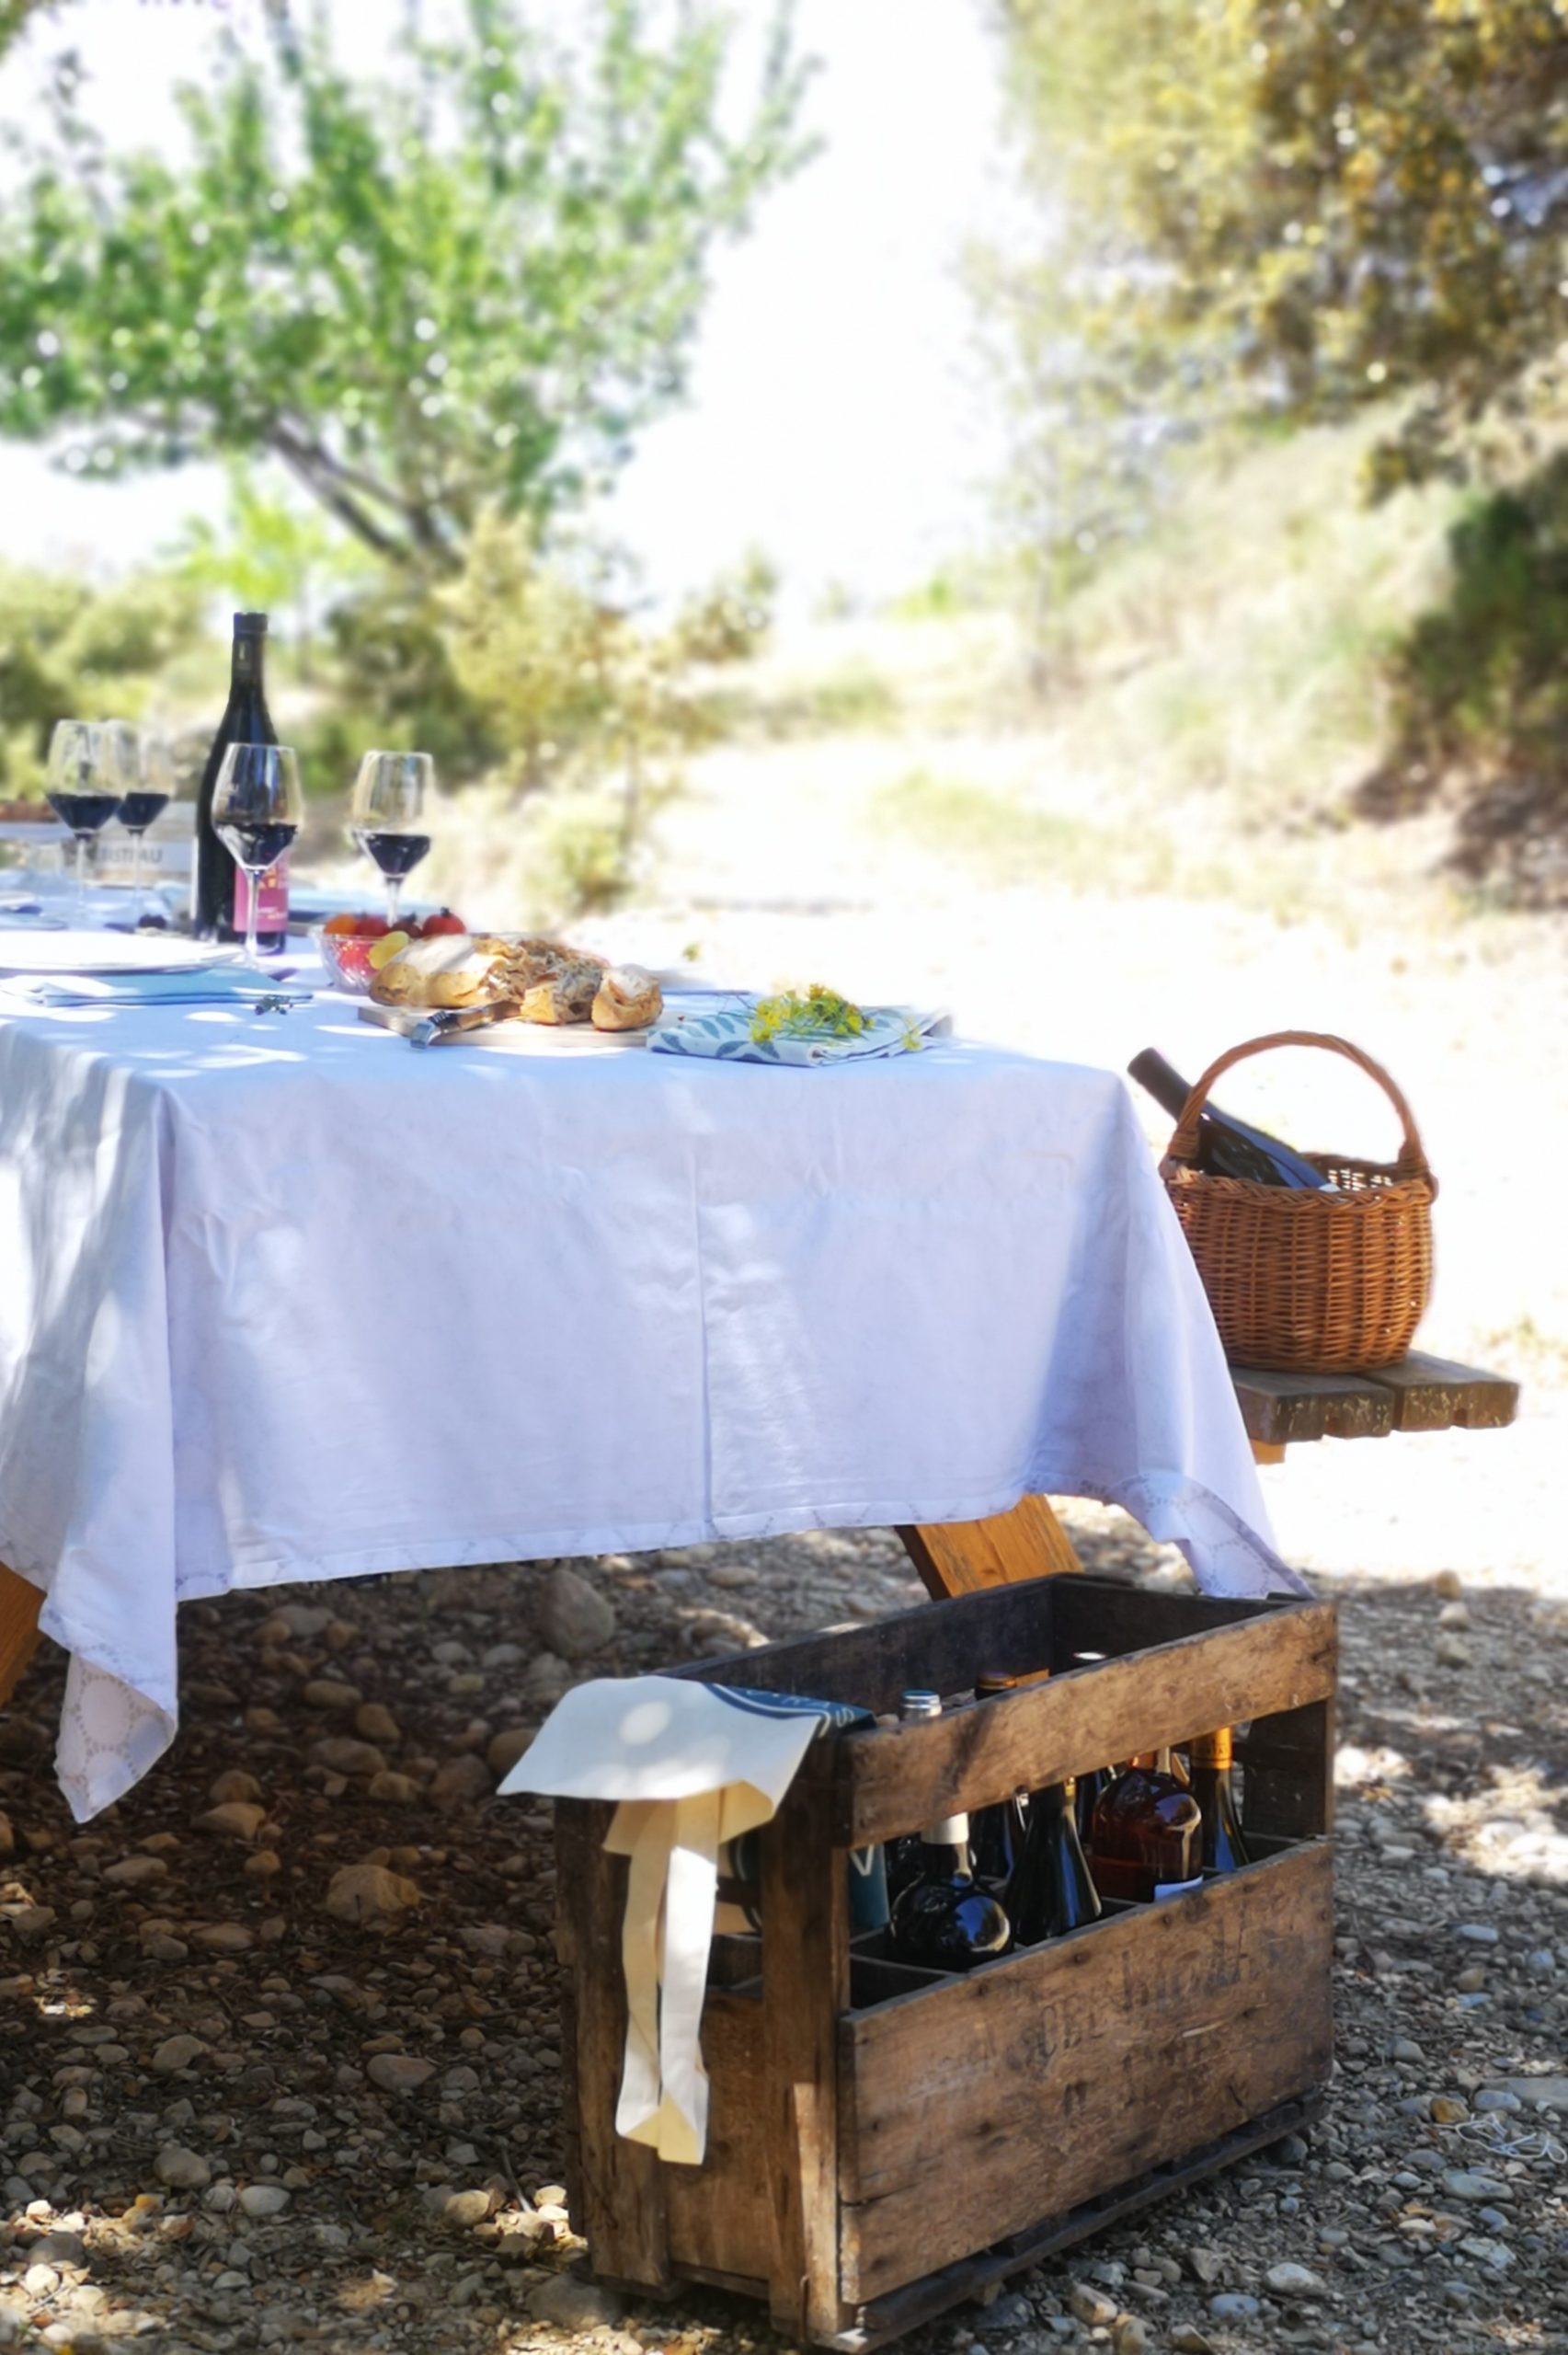 Chiefs and                       Gastronomic Picnic